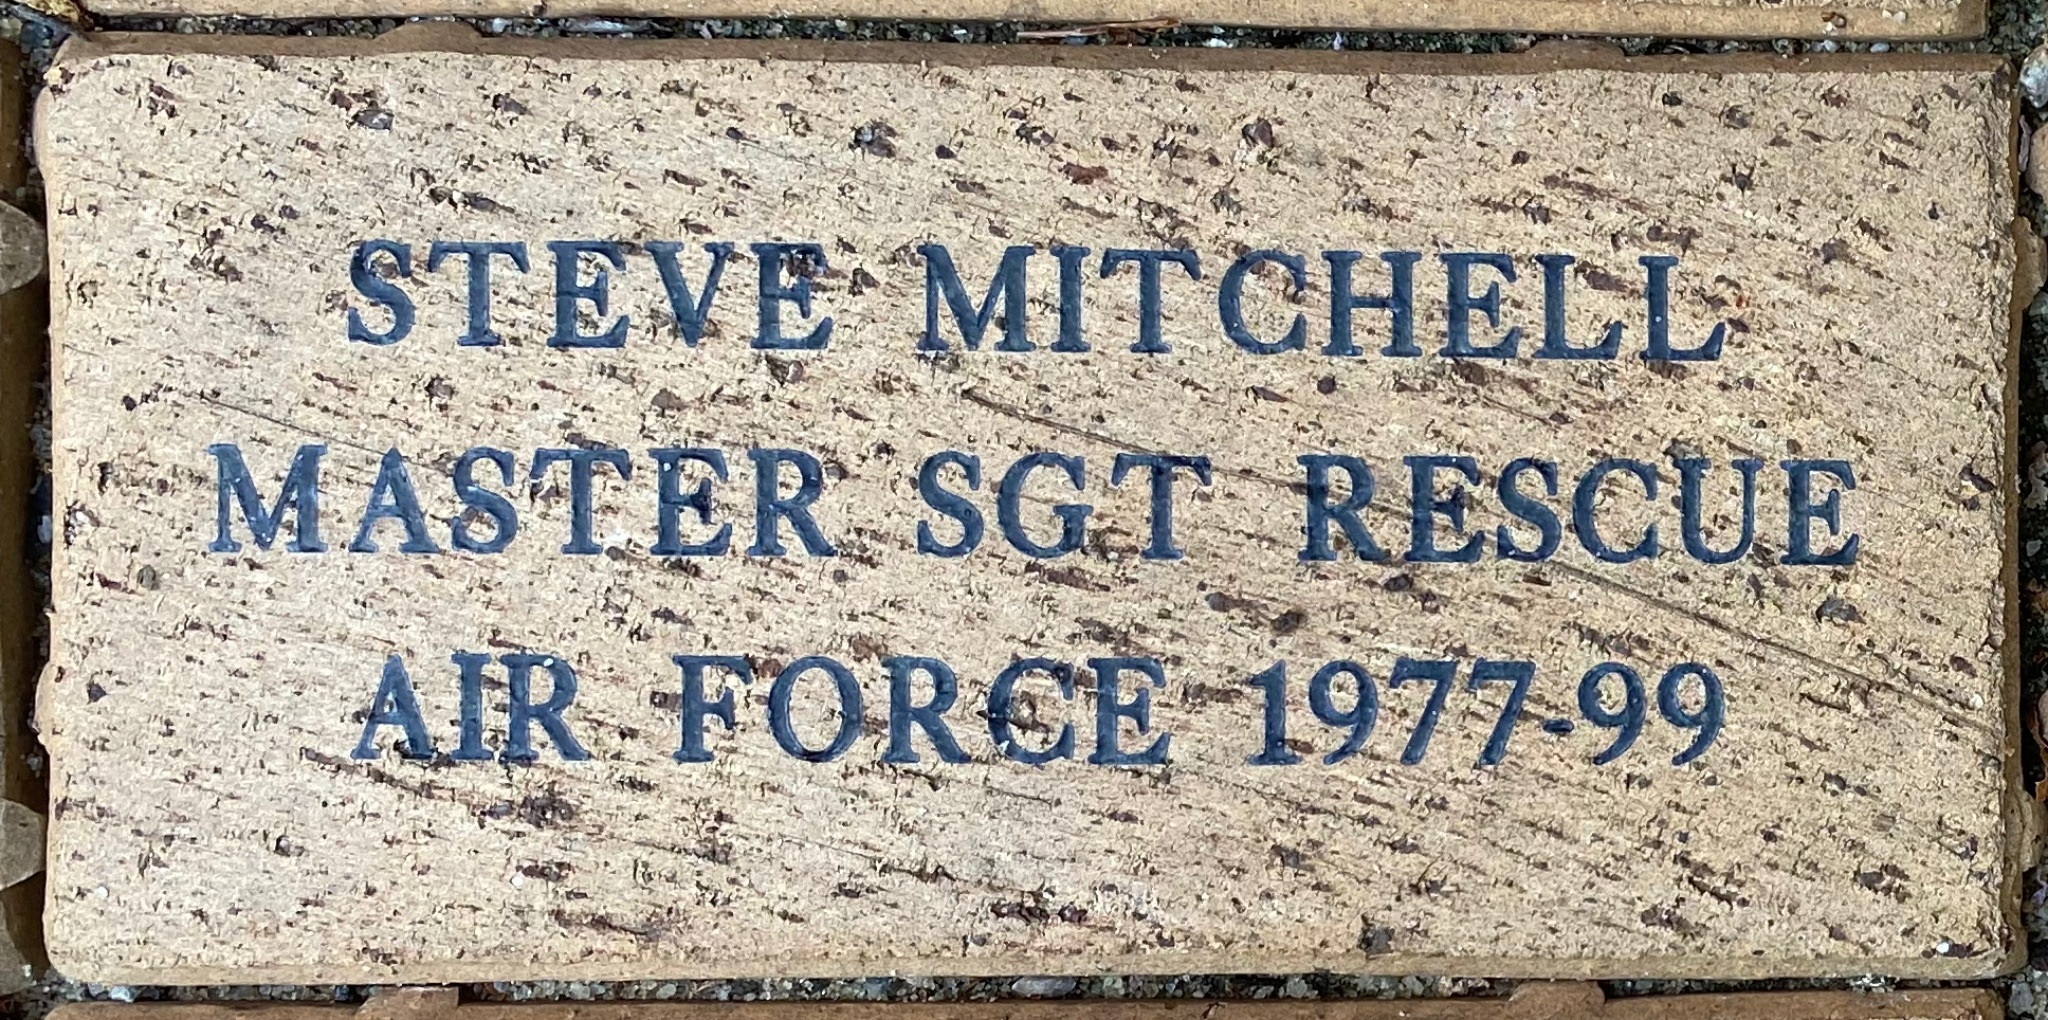 STEVE MITCHELL MASTER SGT RESCUE AIR FORCE 1977-99